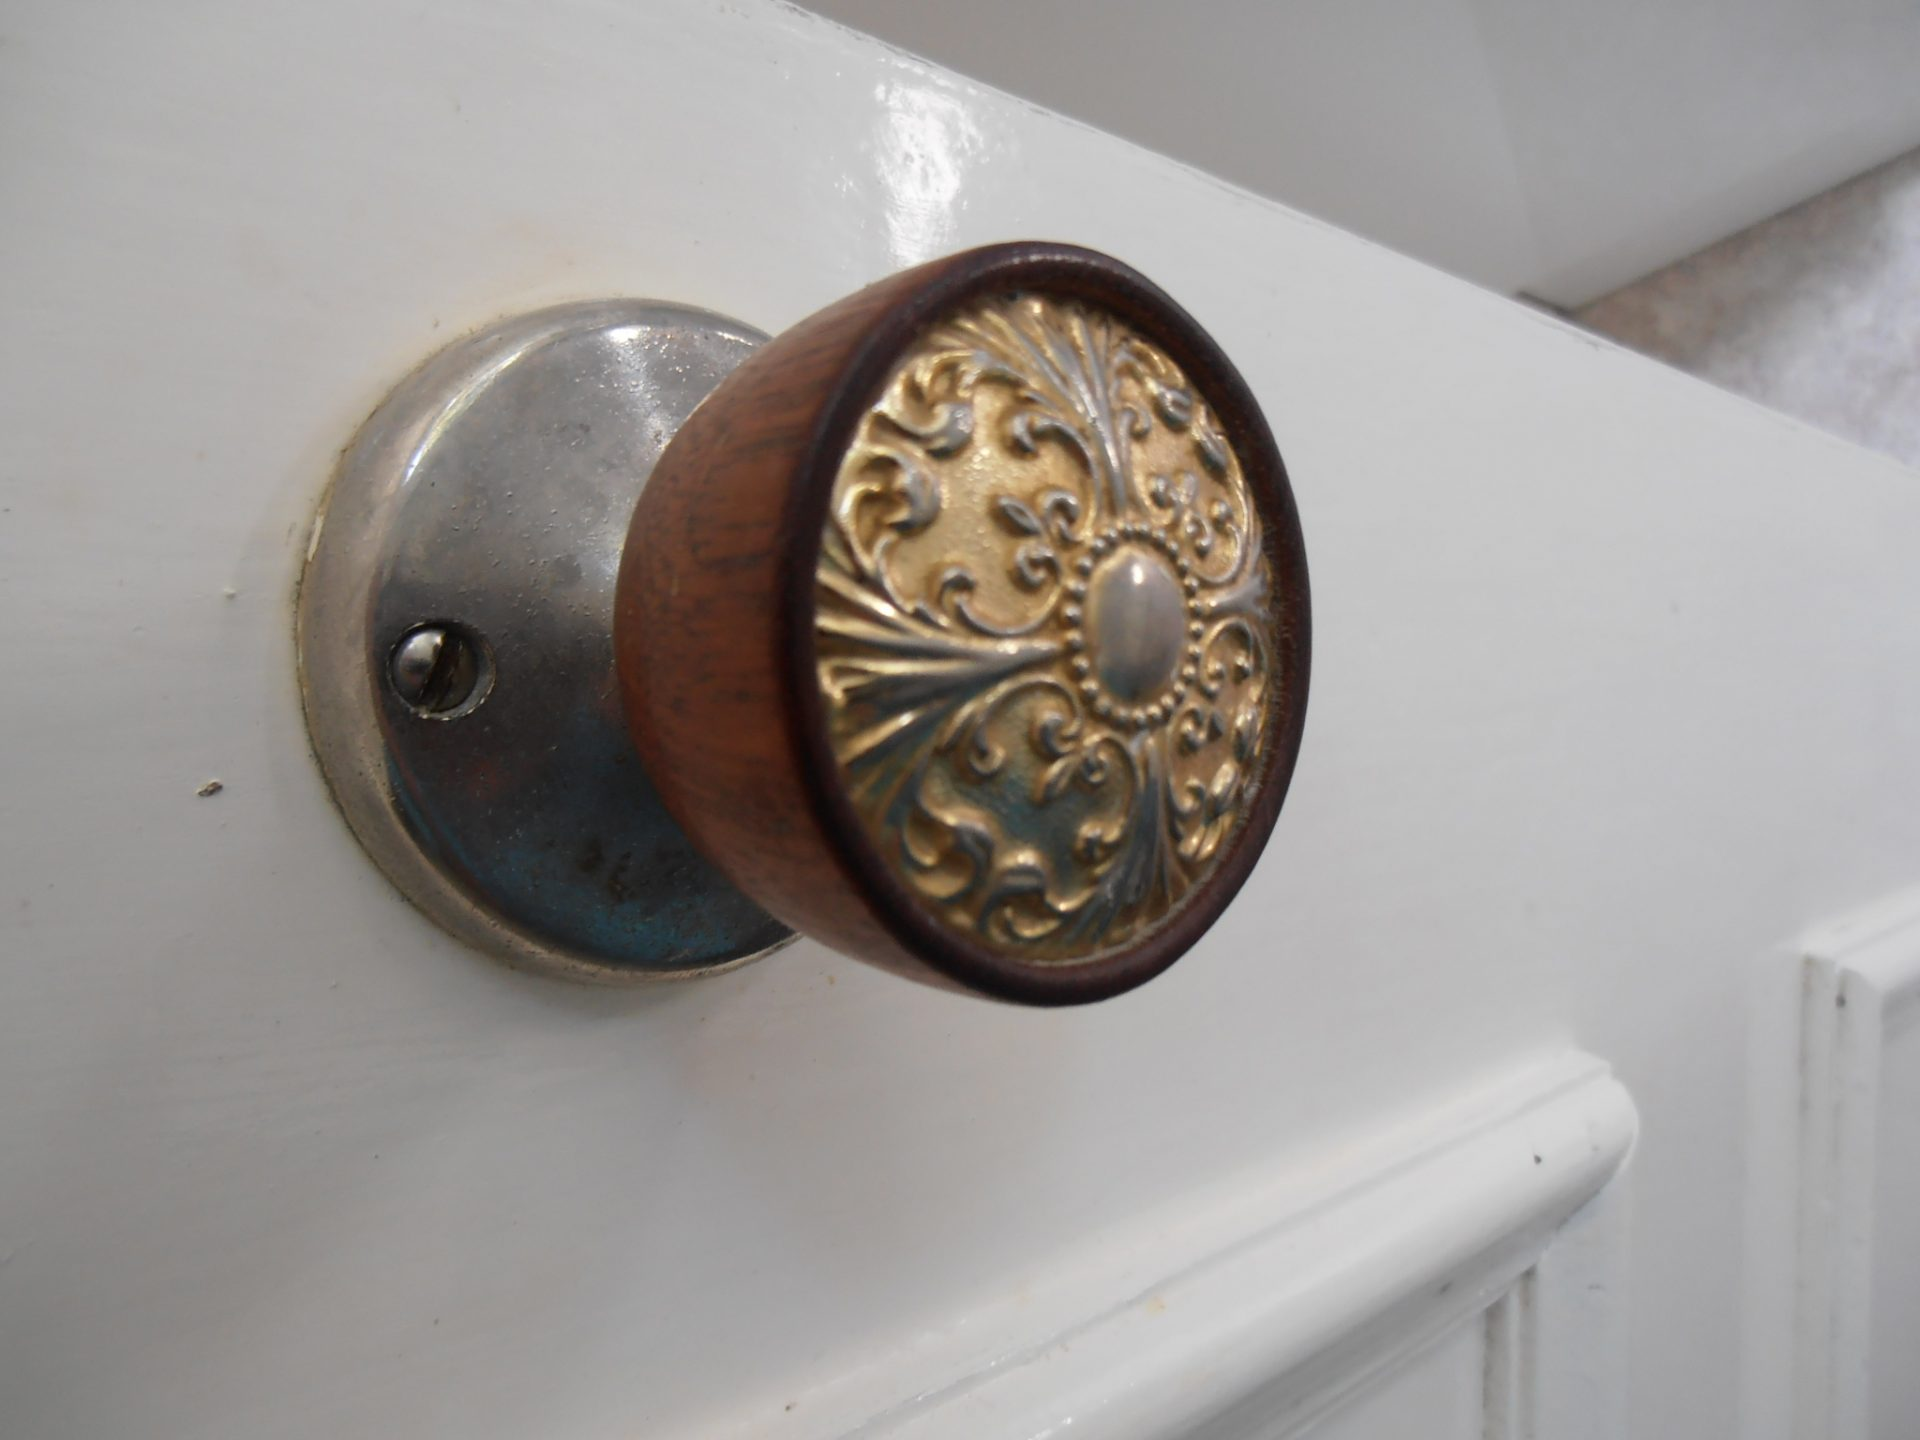 Why Brass Is Used For Doorknobs